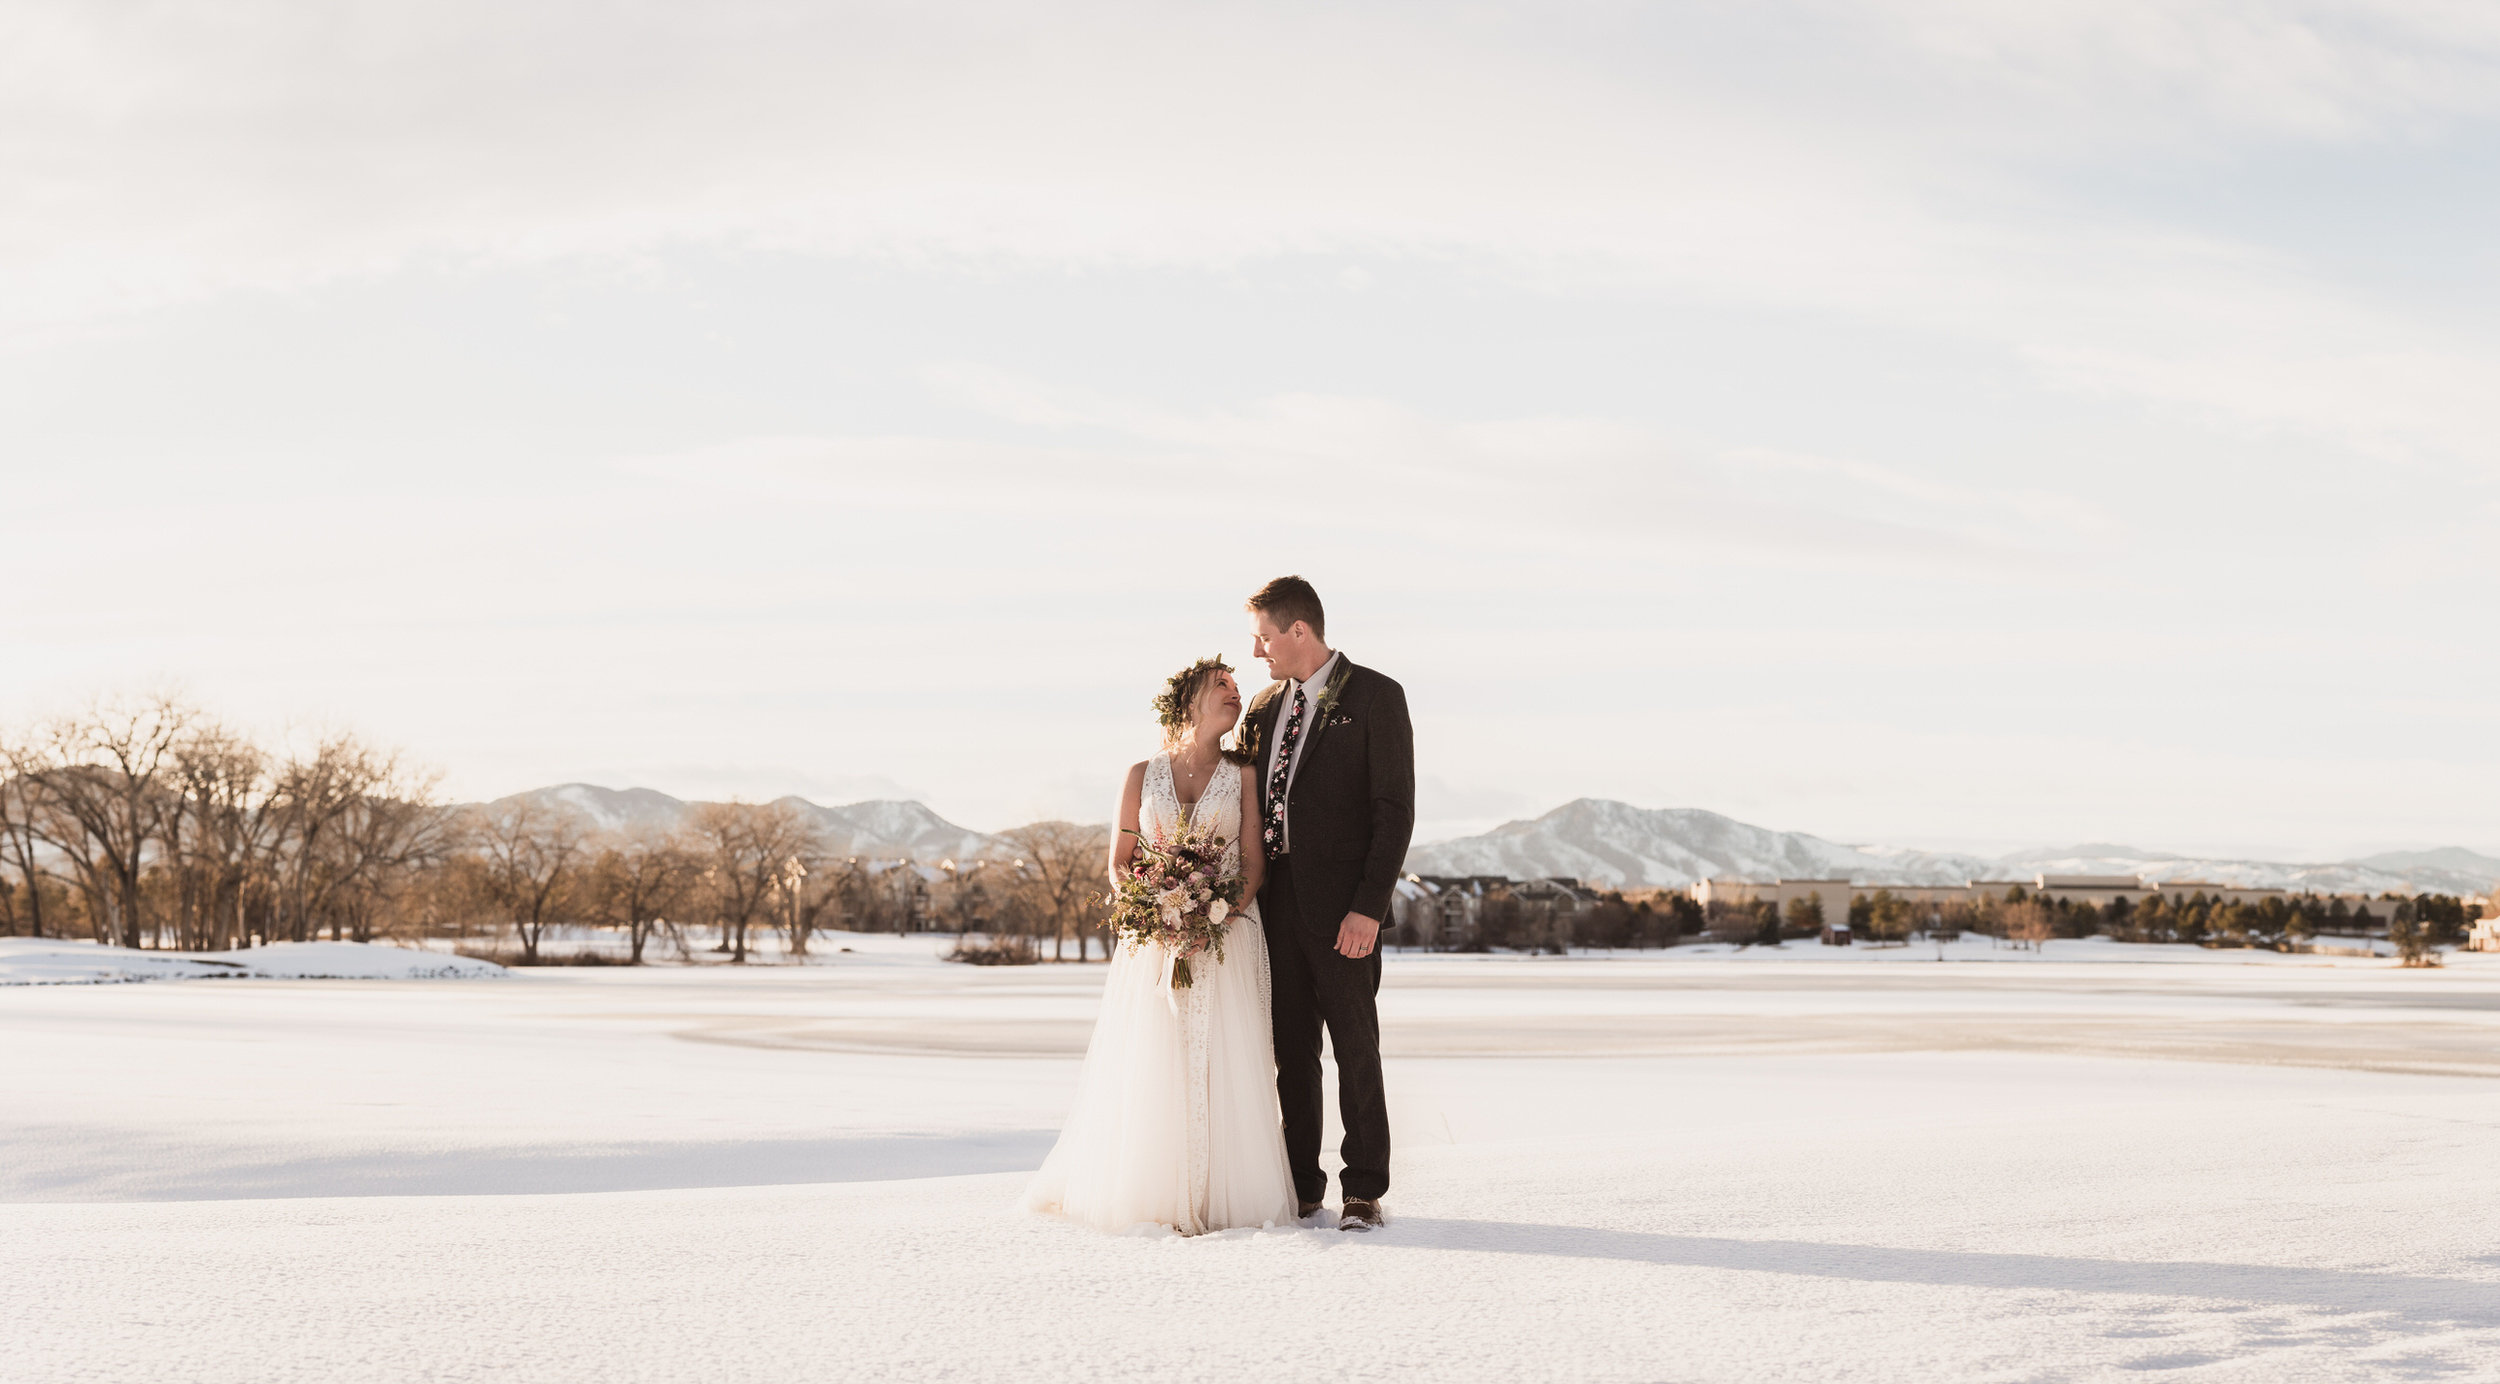 raccoon creek wedding photographers boulder colorado winter